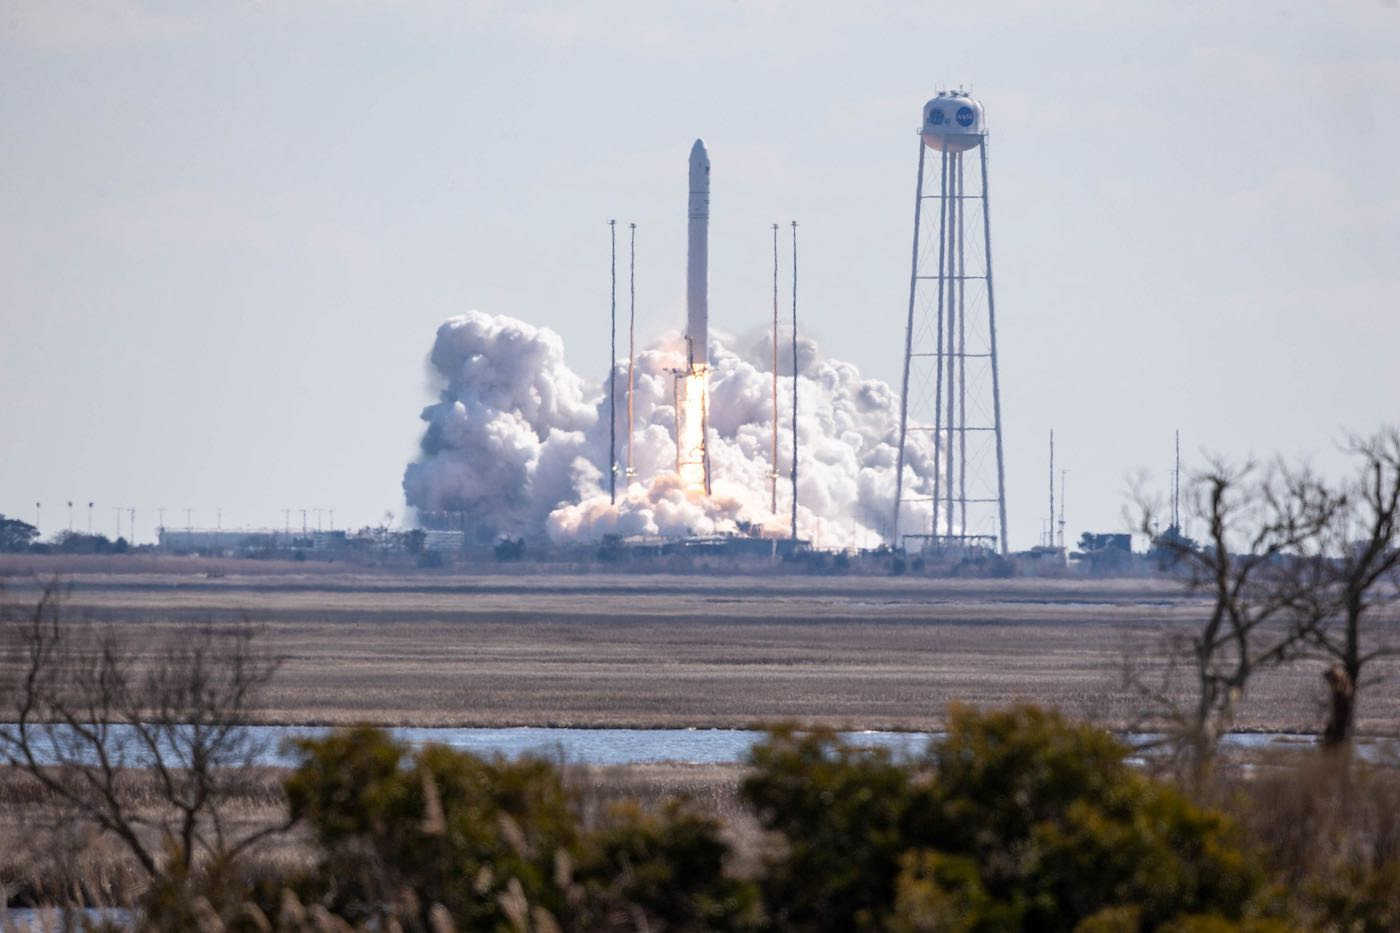 - 50962425428 6de95aaeb6 k - Antares rocket launches heavy cargo load to International Space Station – Spaceflight Now